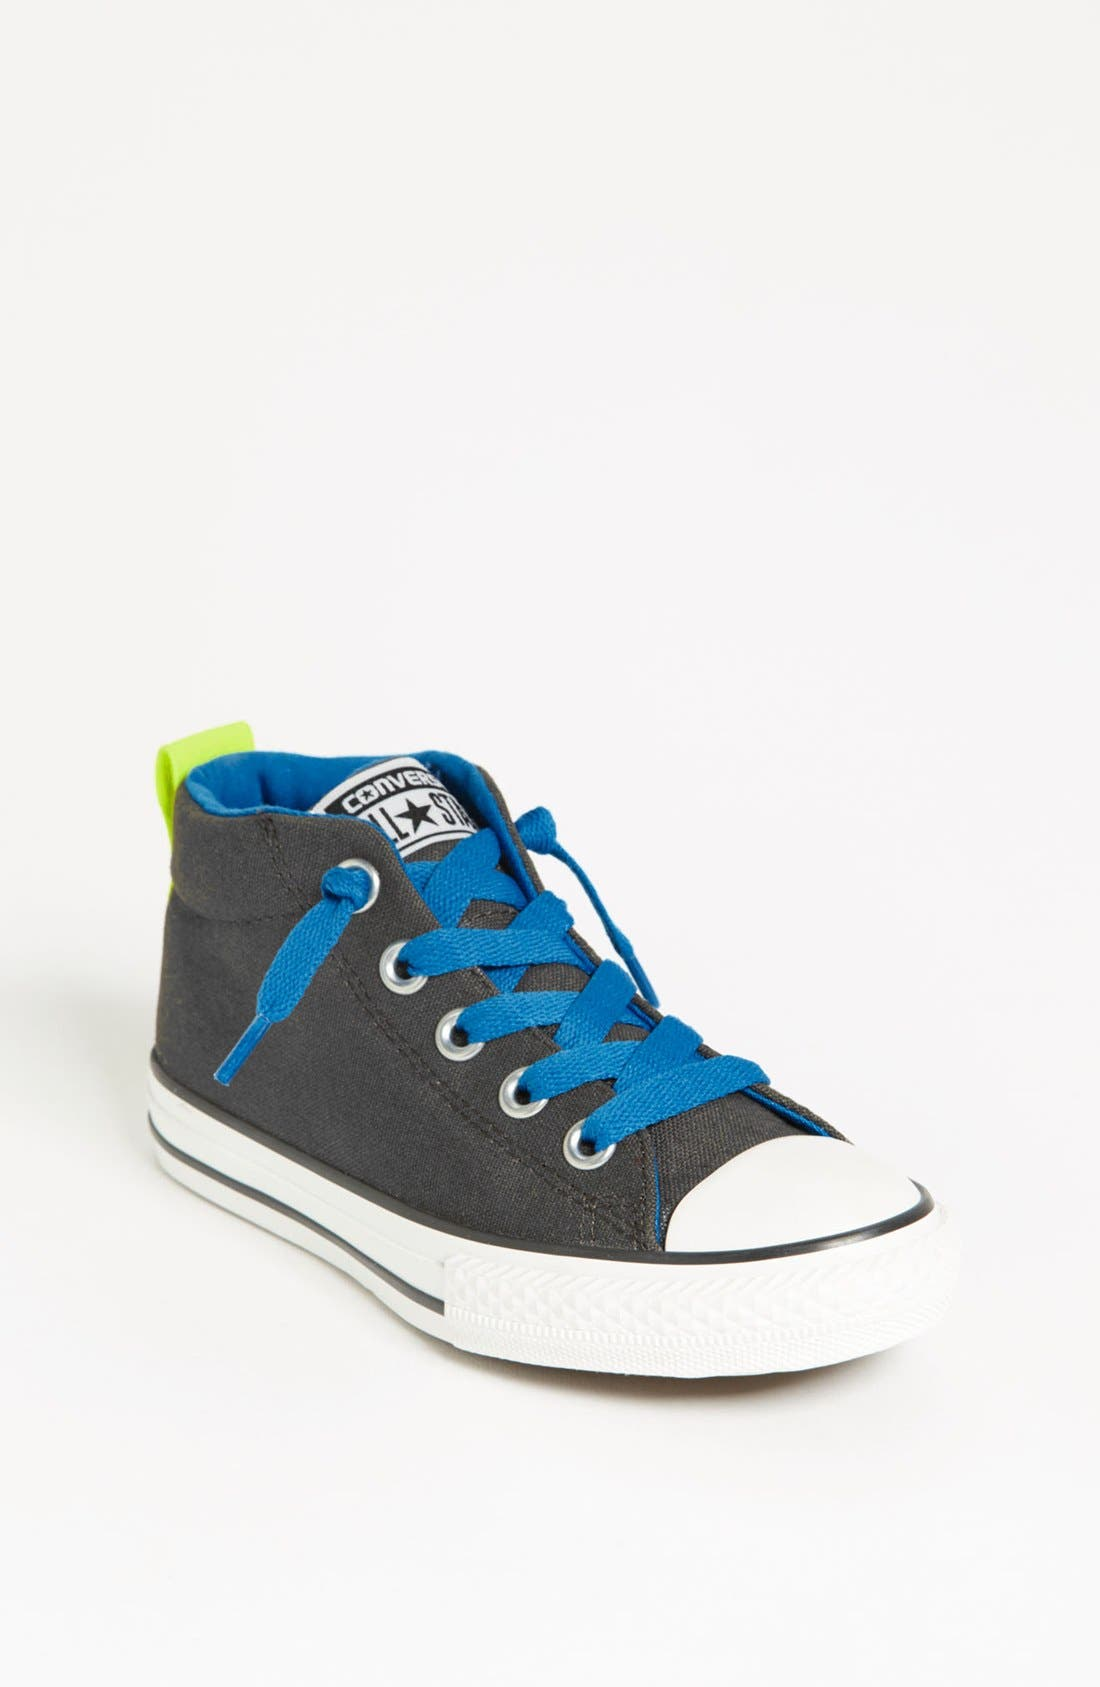 Alternate Image 1 Selected - Converse Chuck Taylor® 'Street Mid Cab' Slip-On Sneaker (Toddler, Little Kid & Big Kid)